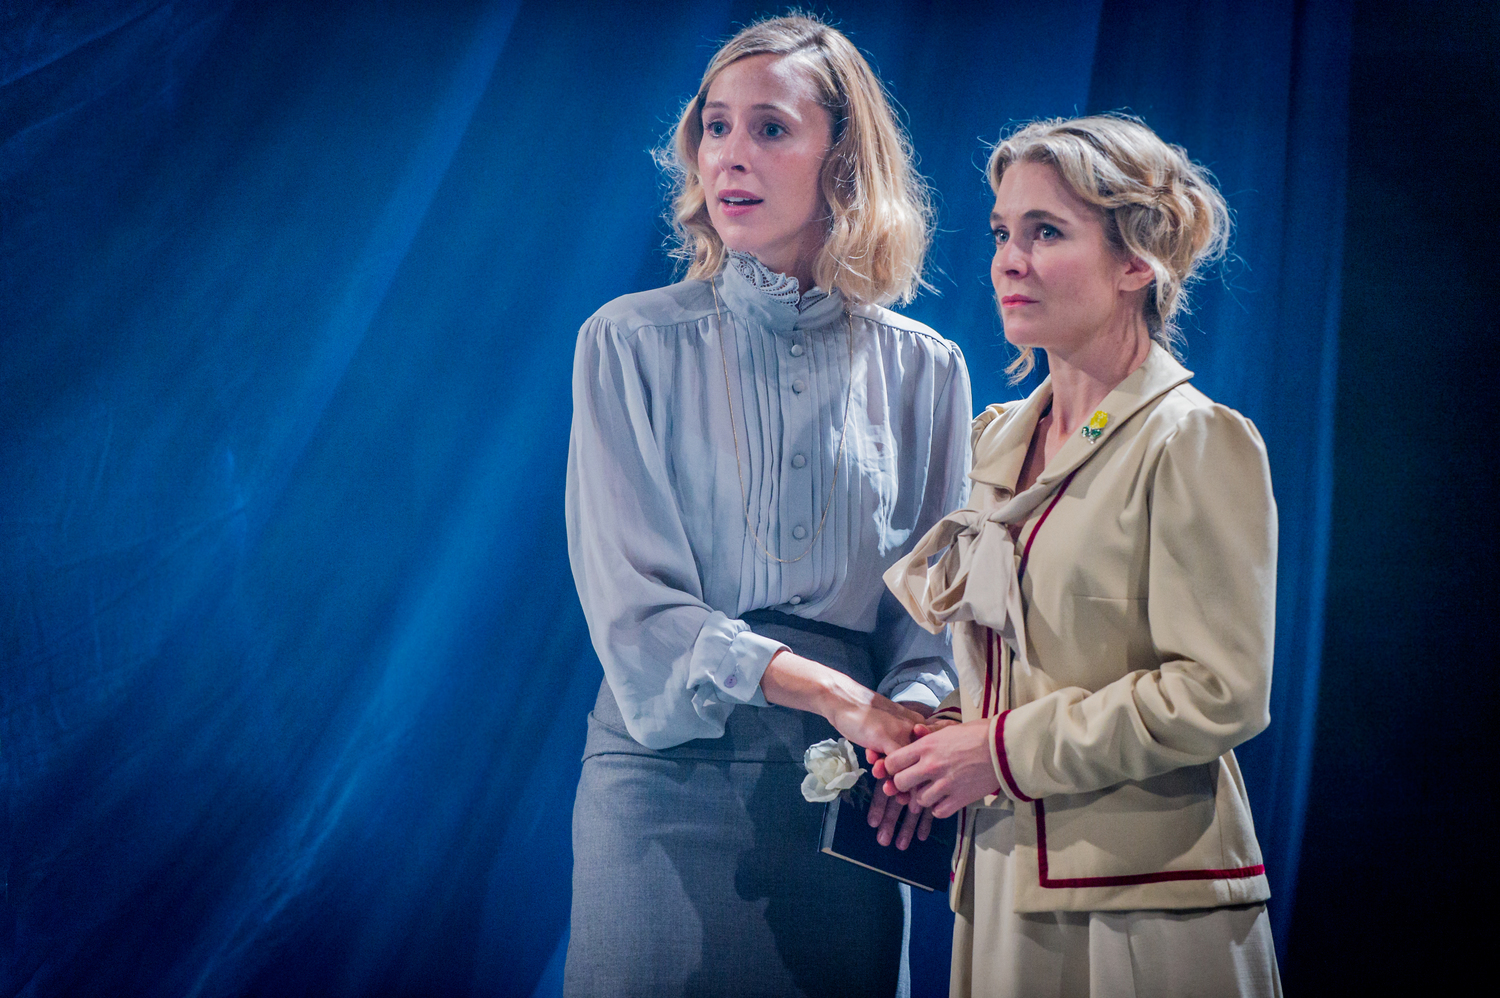 Sally Scott & Kaisa Hammarlund in As You Like It, composed by Jude Obermüller (photo by Robert Workman)